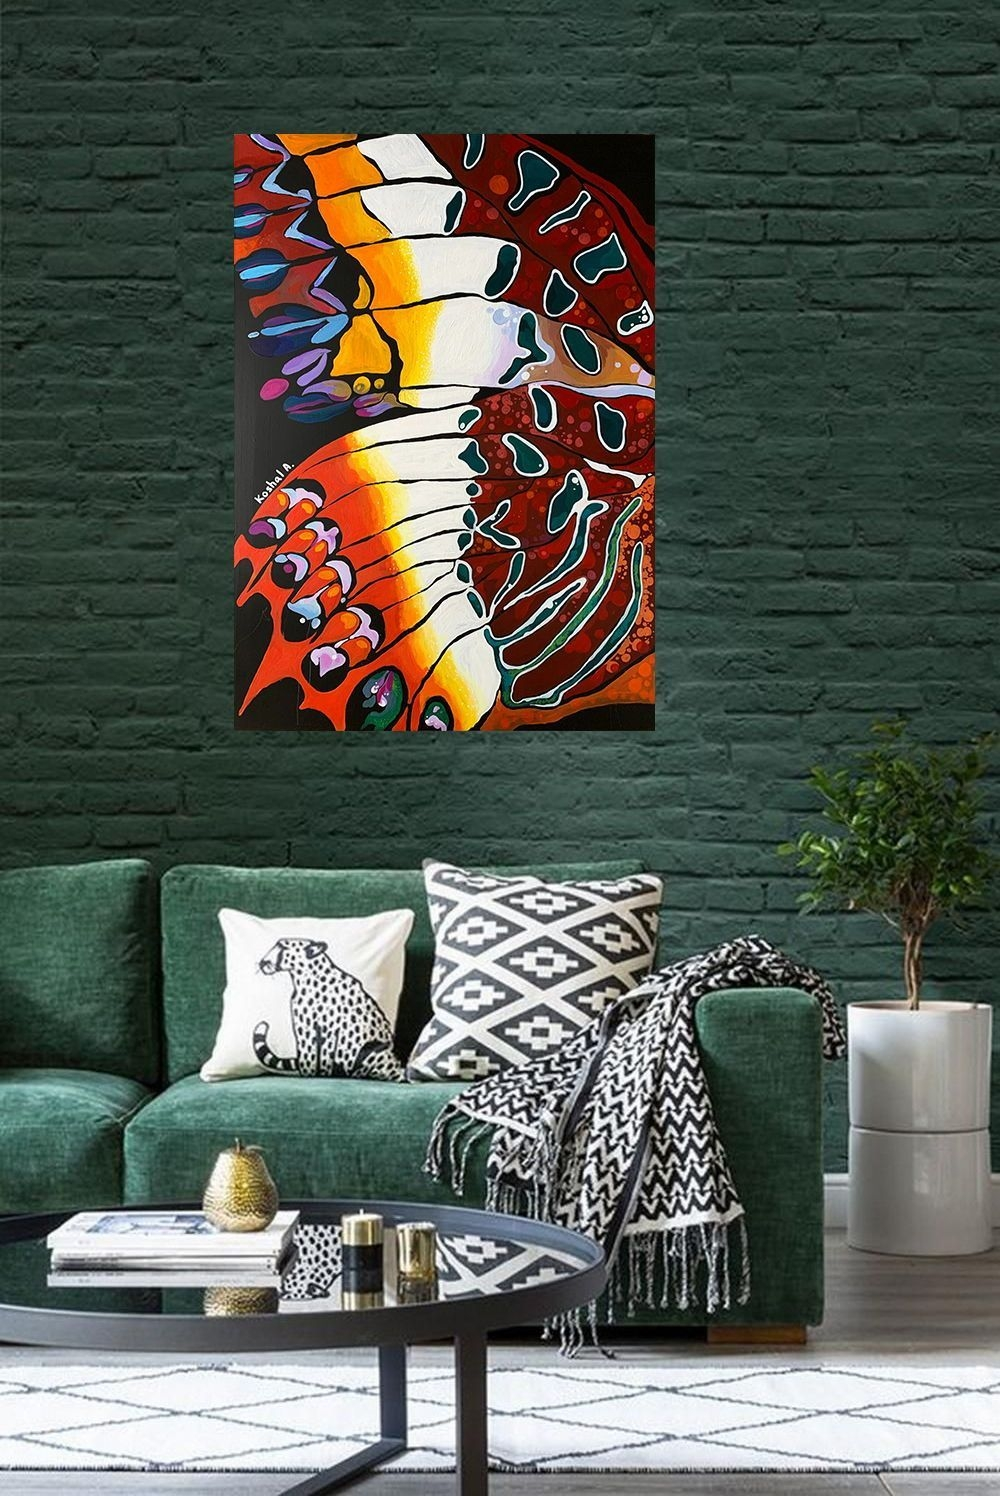 Artistic Living Room Wall Art Large On Incredible Acrylic Painting On Canvas Modern Abstract Art On Living Room Wall Art Large